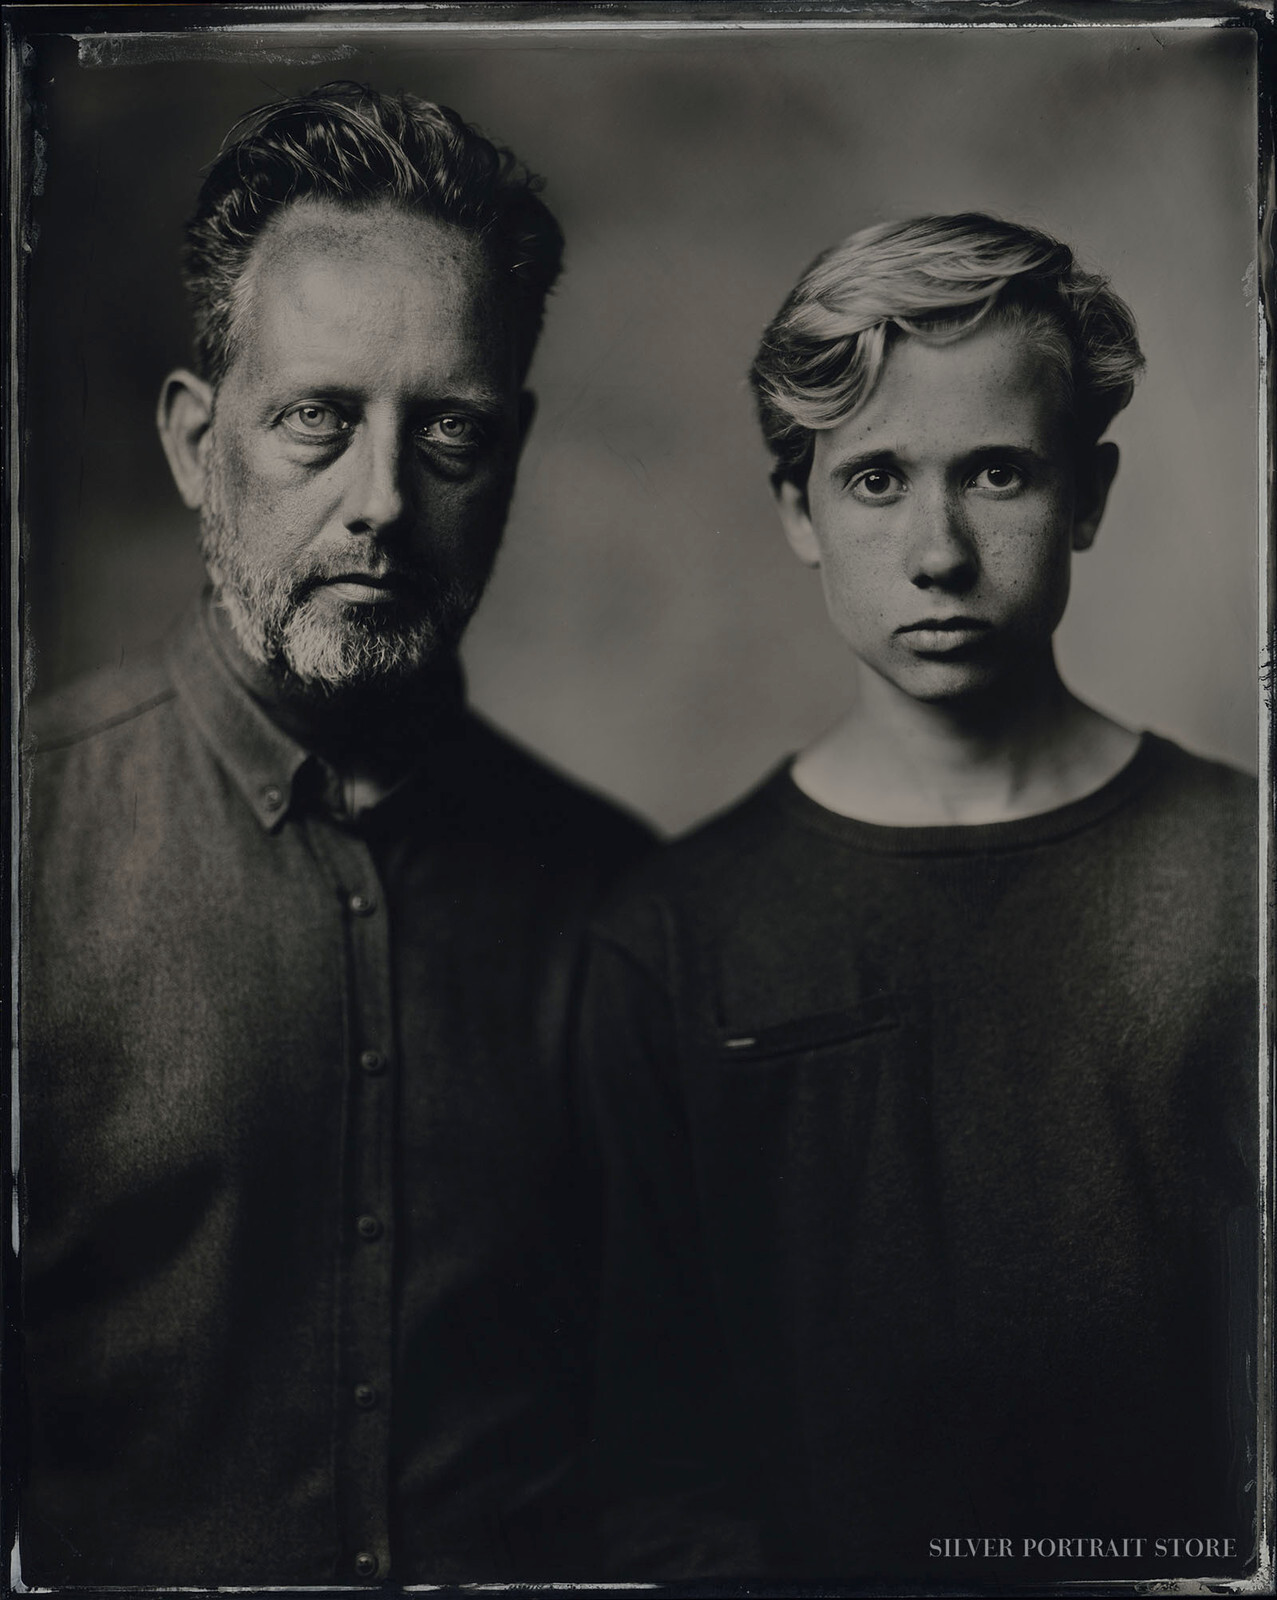 Thierry & Govert-Silver Portrait Store-Wet plate collodion-Tintype 20 x 25 cm.